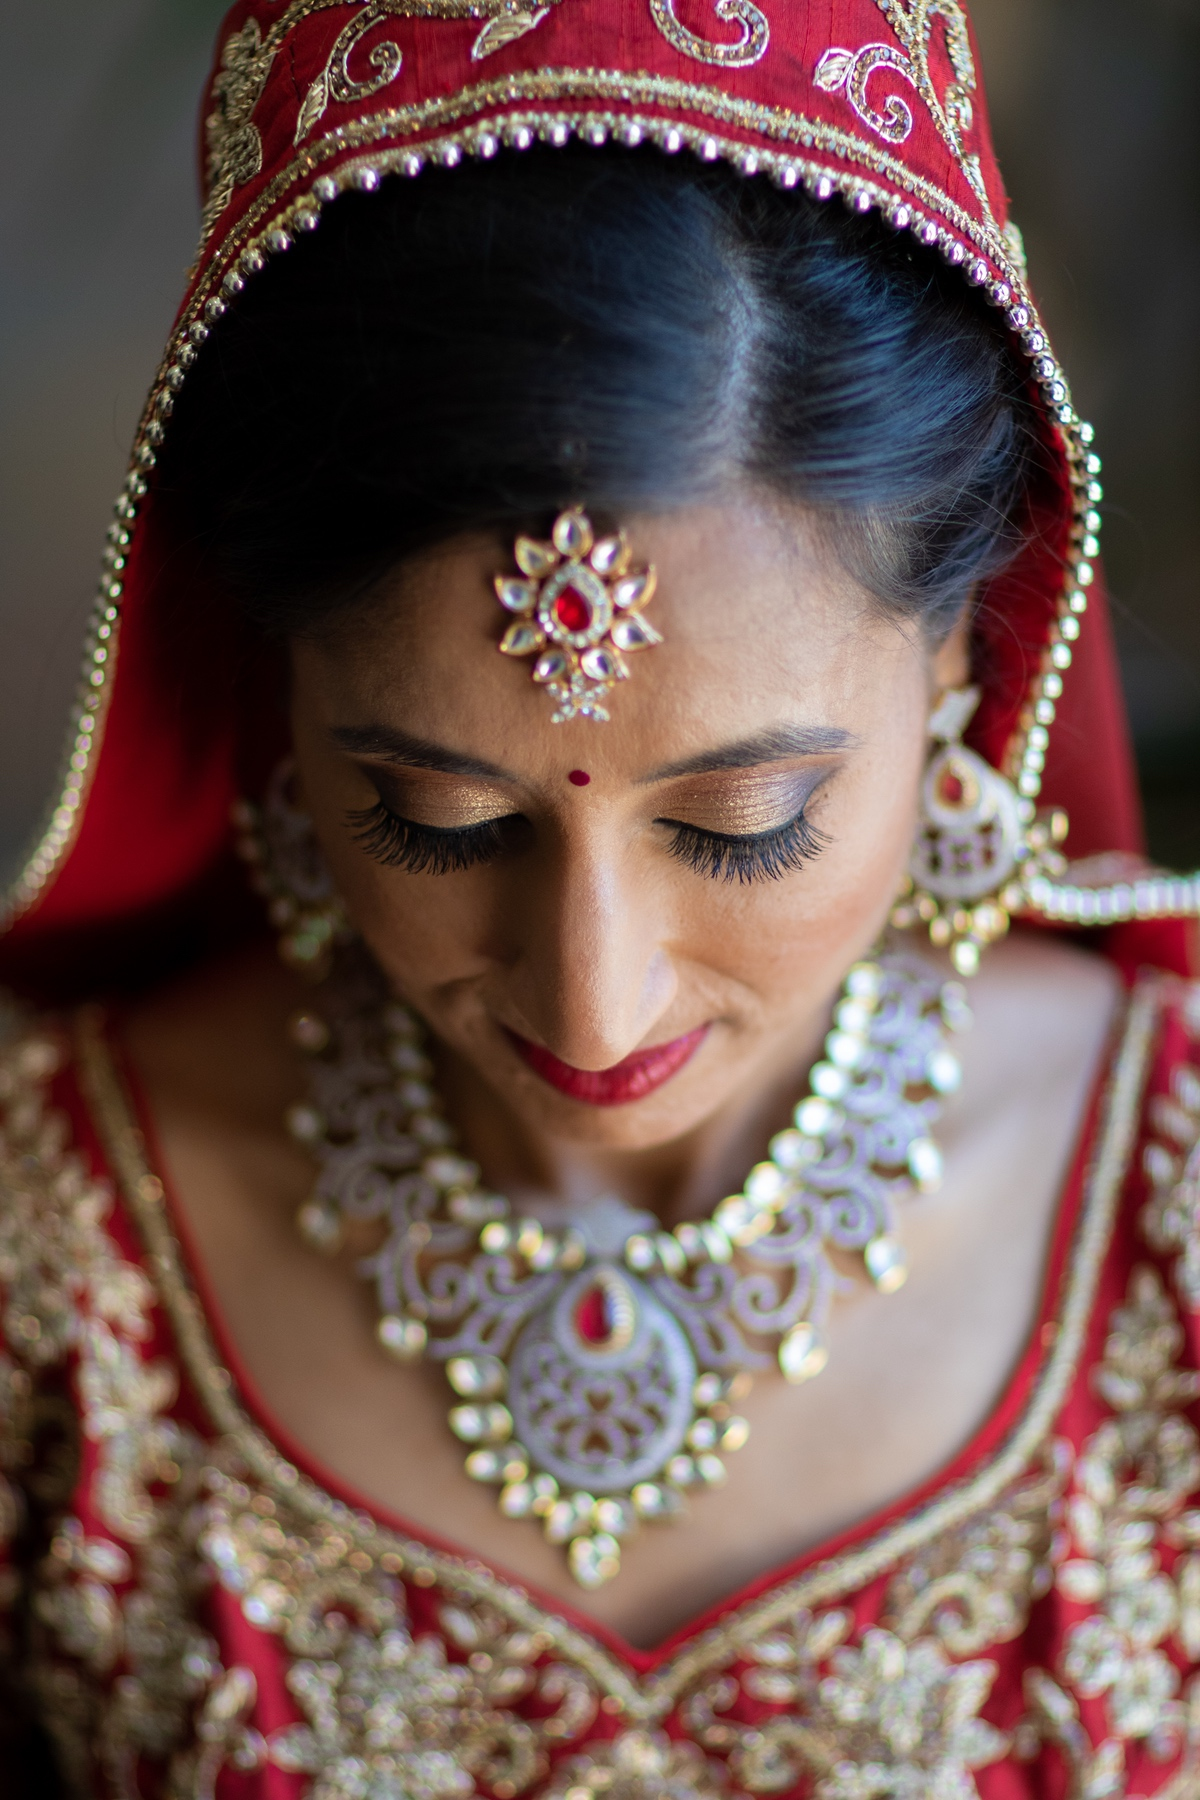 Le Cape Weddings - South Asian Wedding - Chicago Wedding Photographer P&V-51.jpg